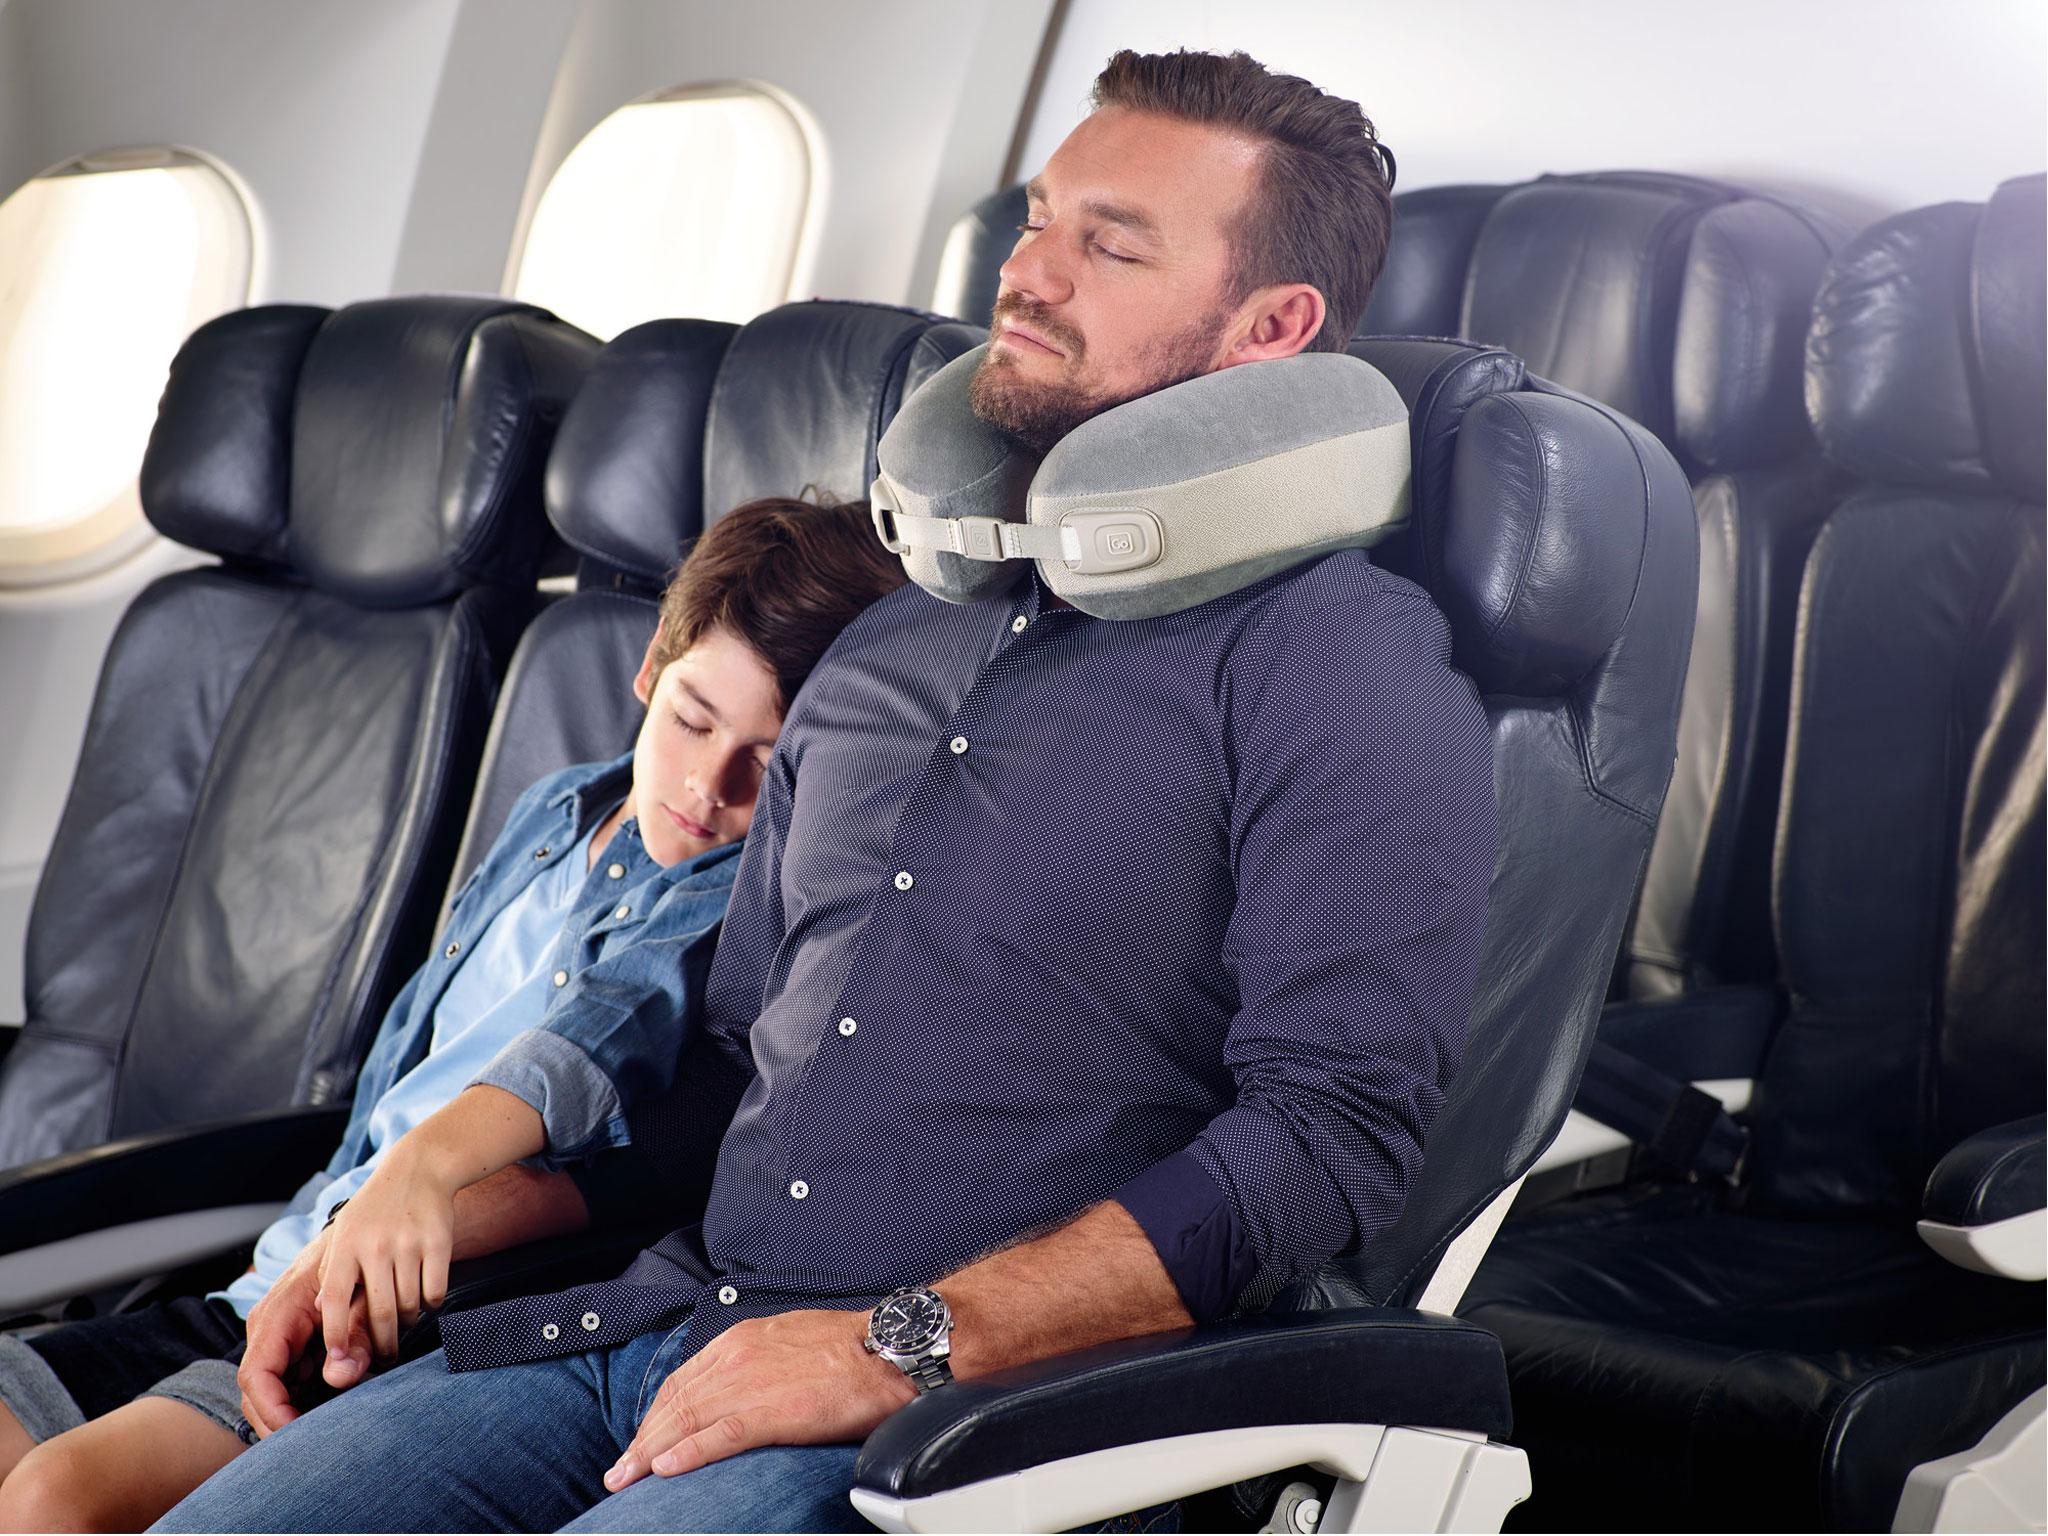 8 Best Long Haul Flight Accessories The Independent